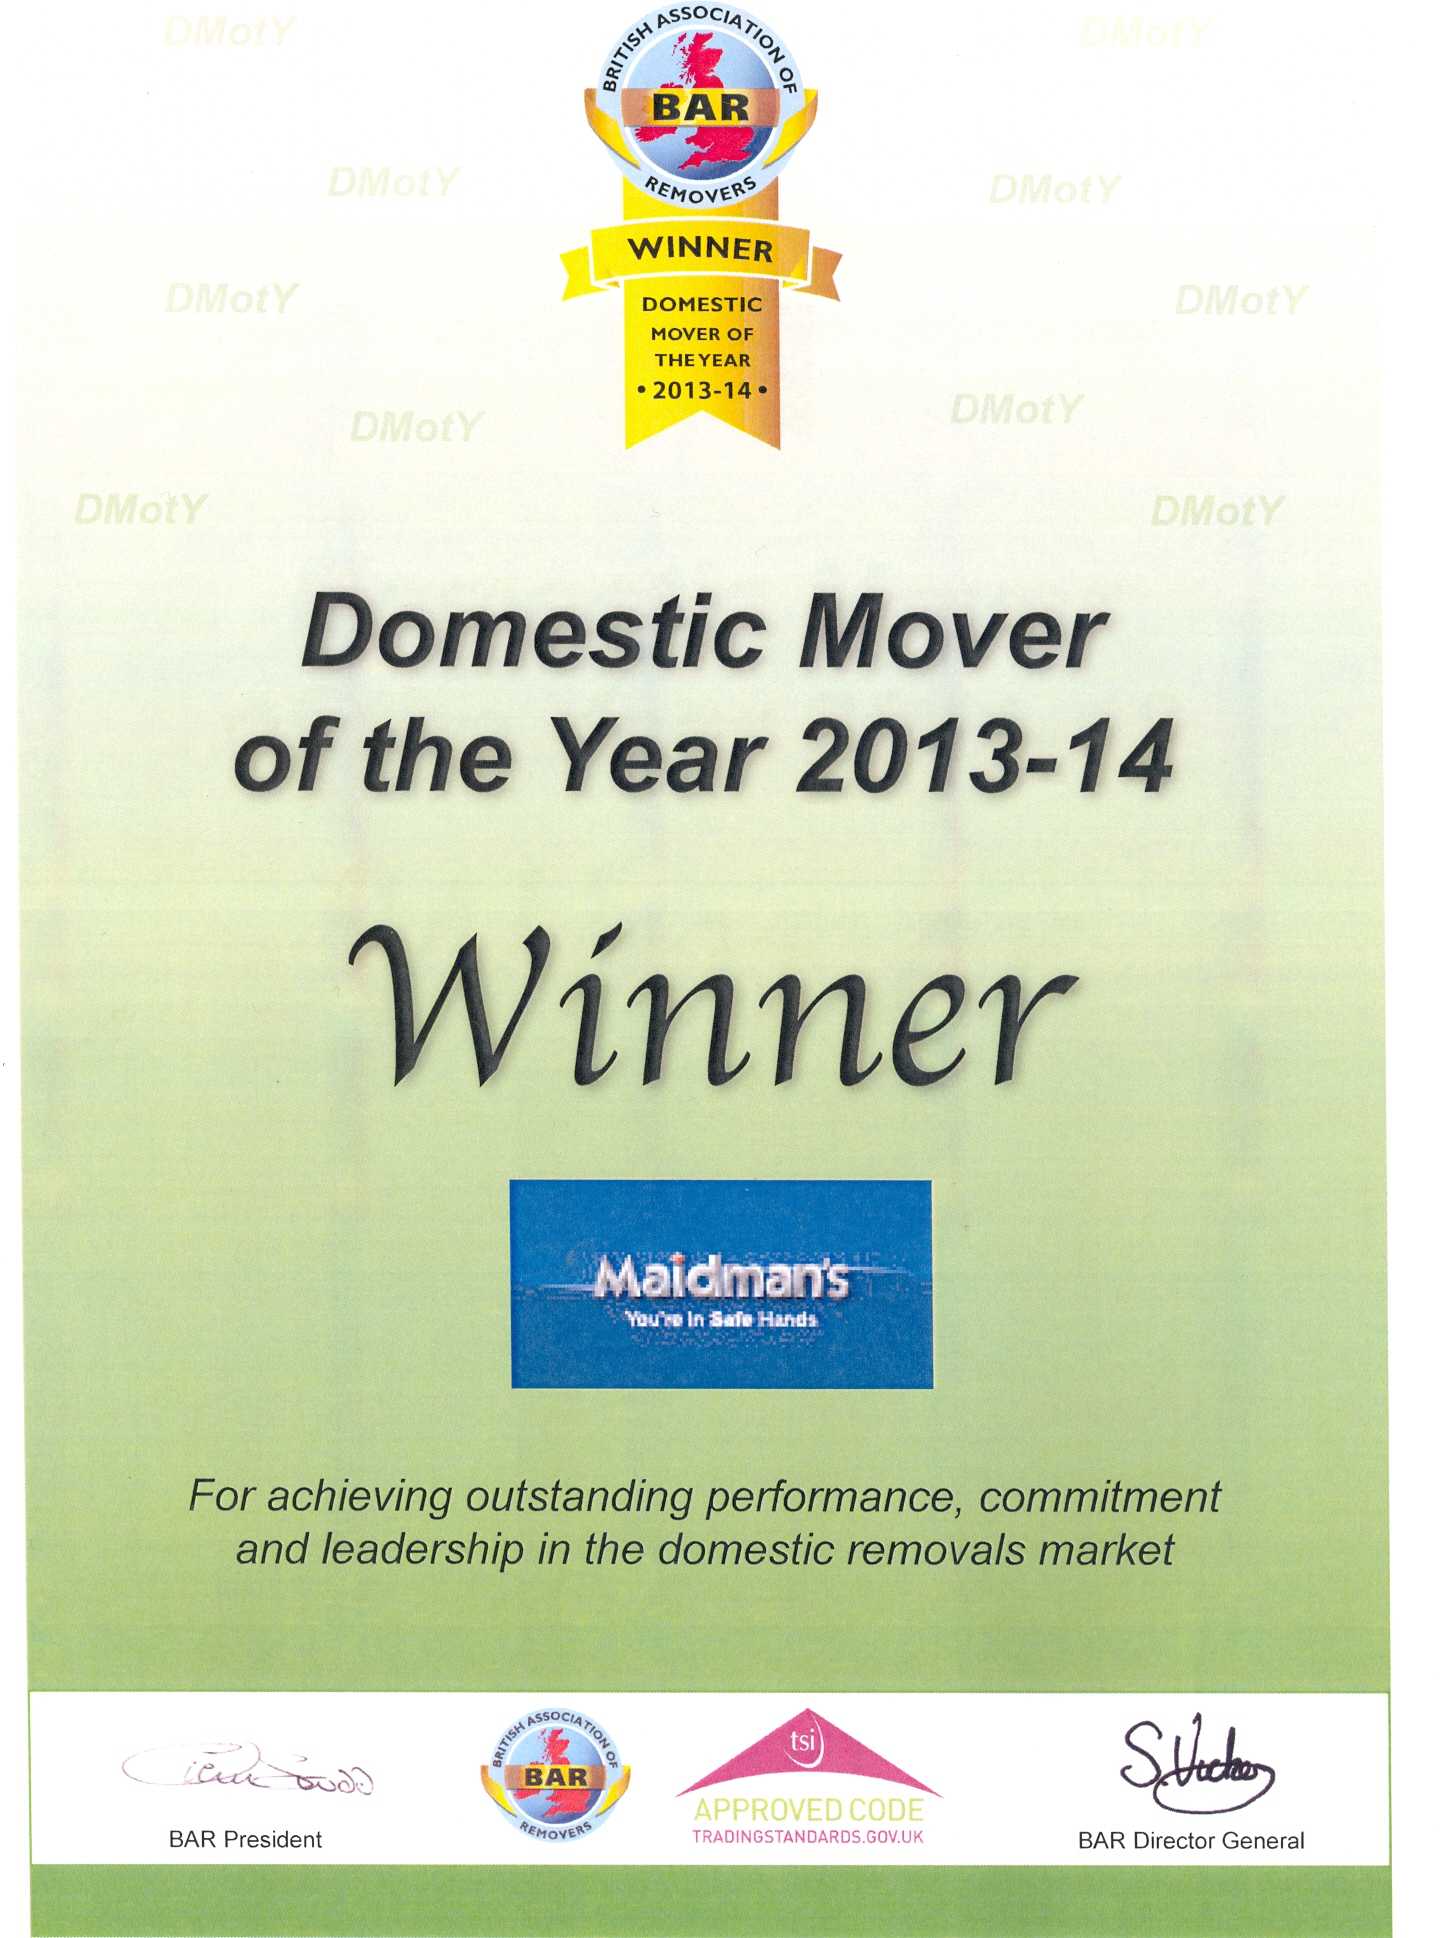 Domestic Mover of the Year Cert 2013-14